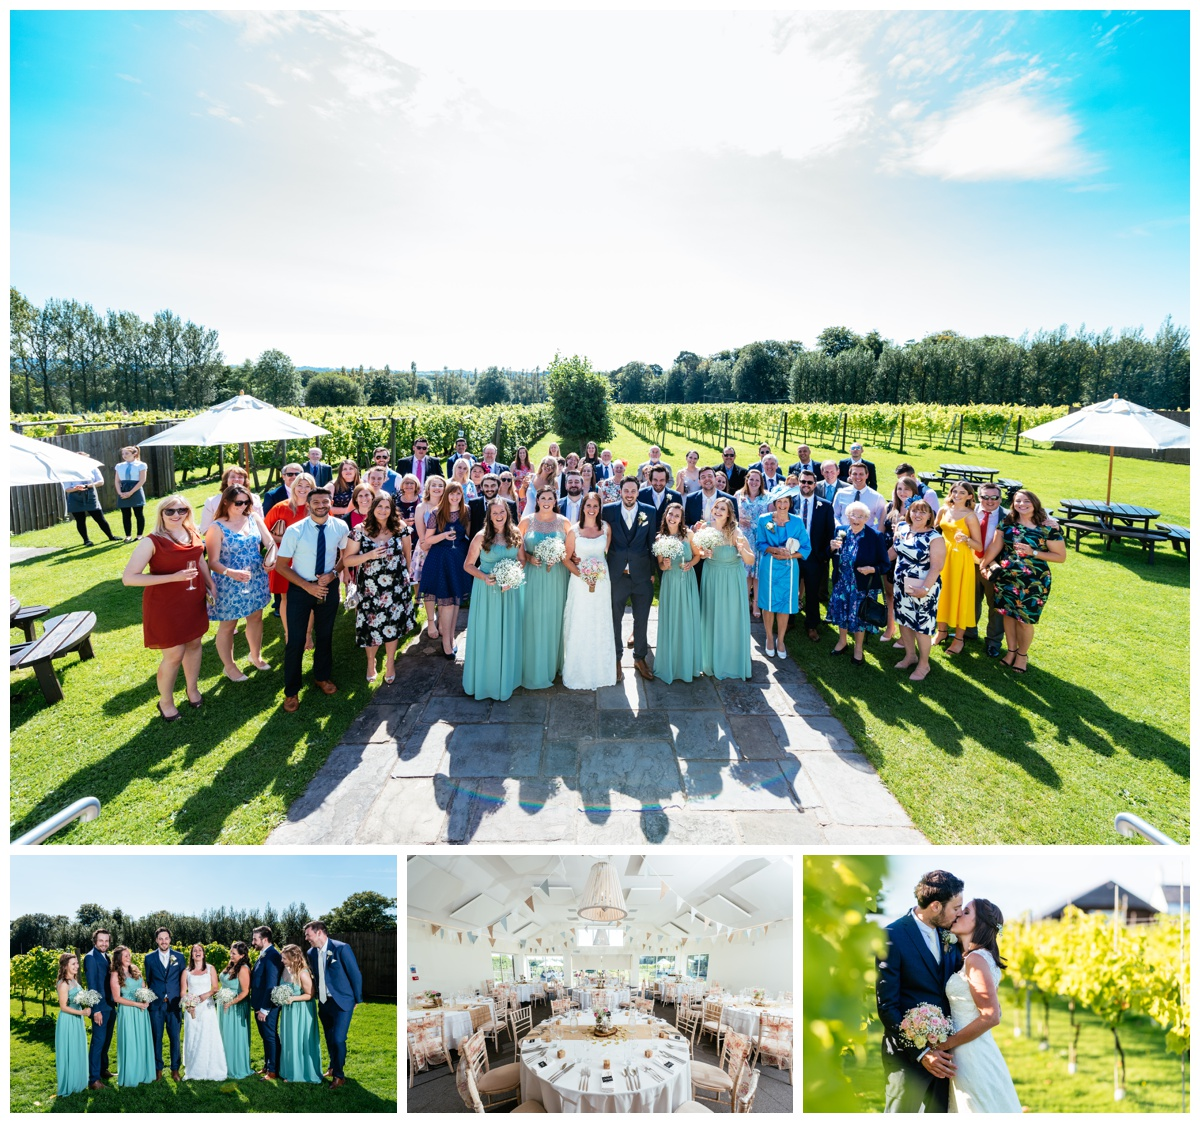 Llanerch Vineyard Weddings Photography by Owen Mathias